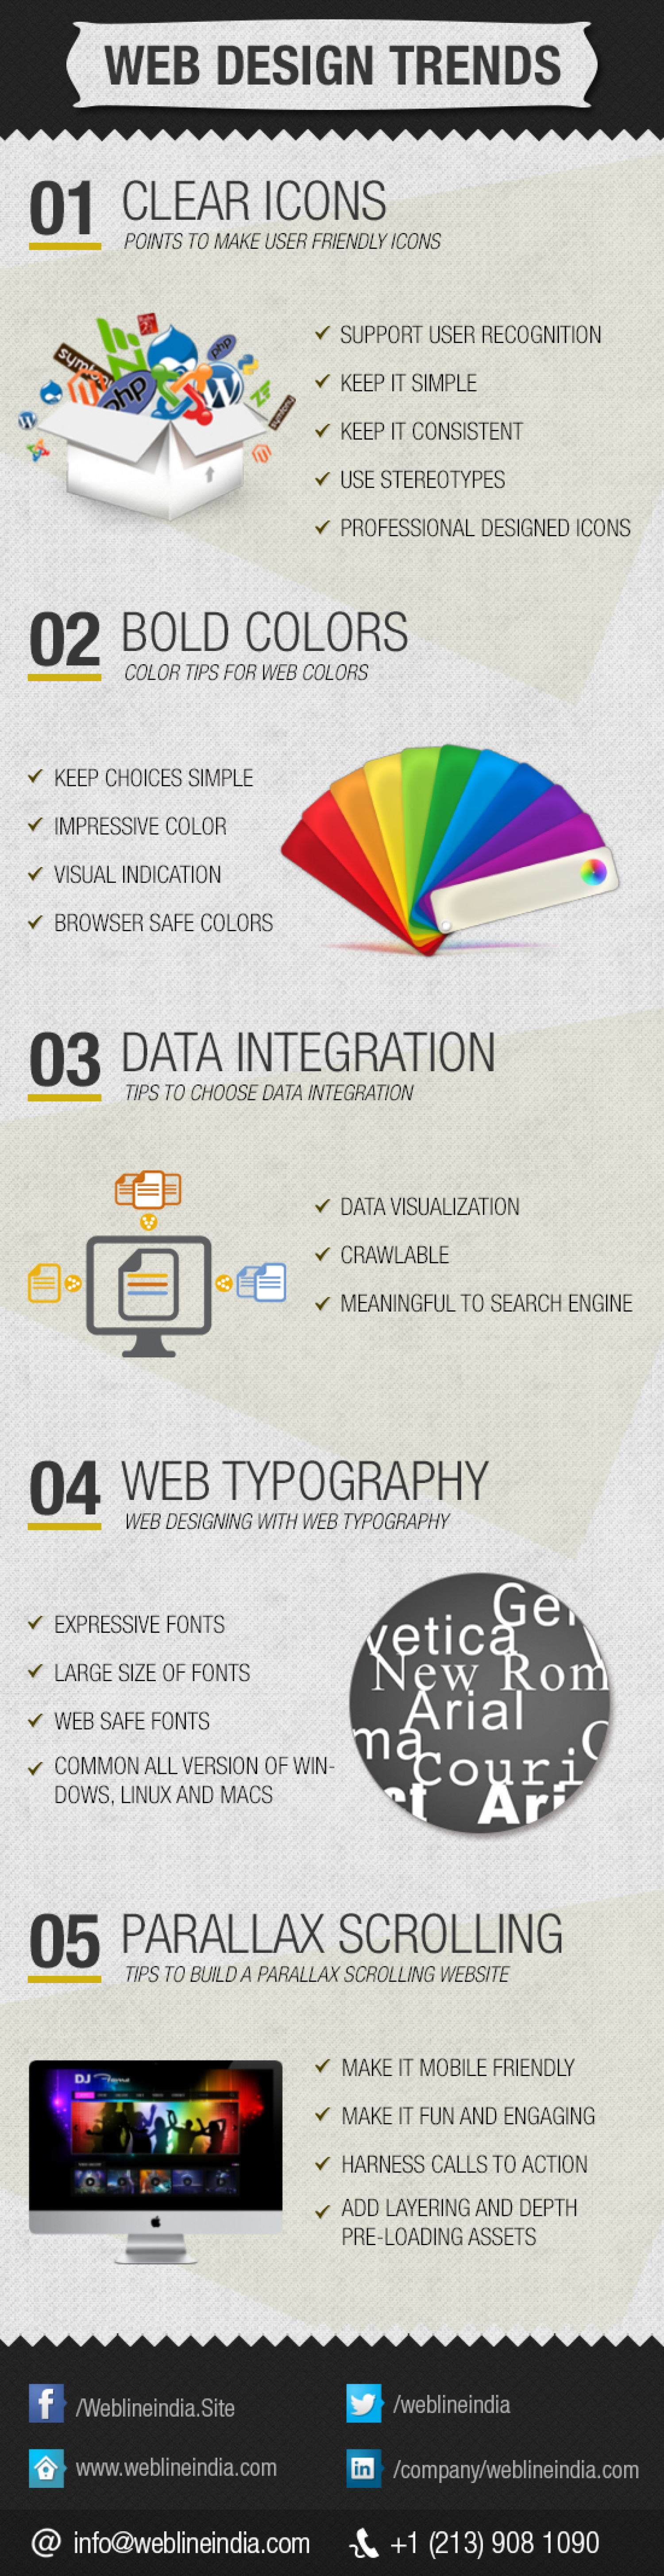 Latest Web Design Trends Infographic